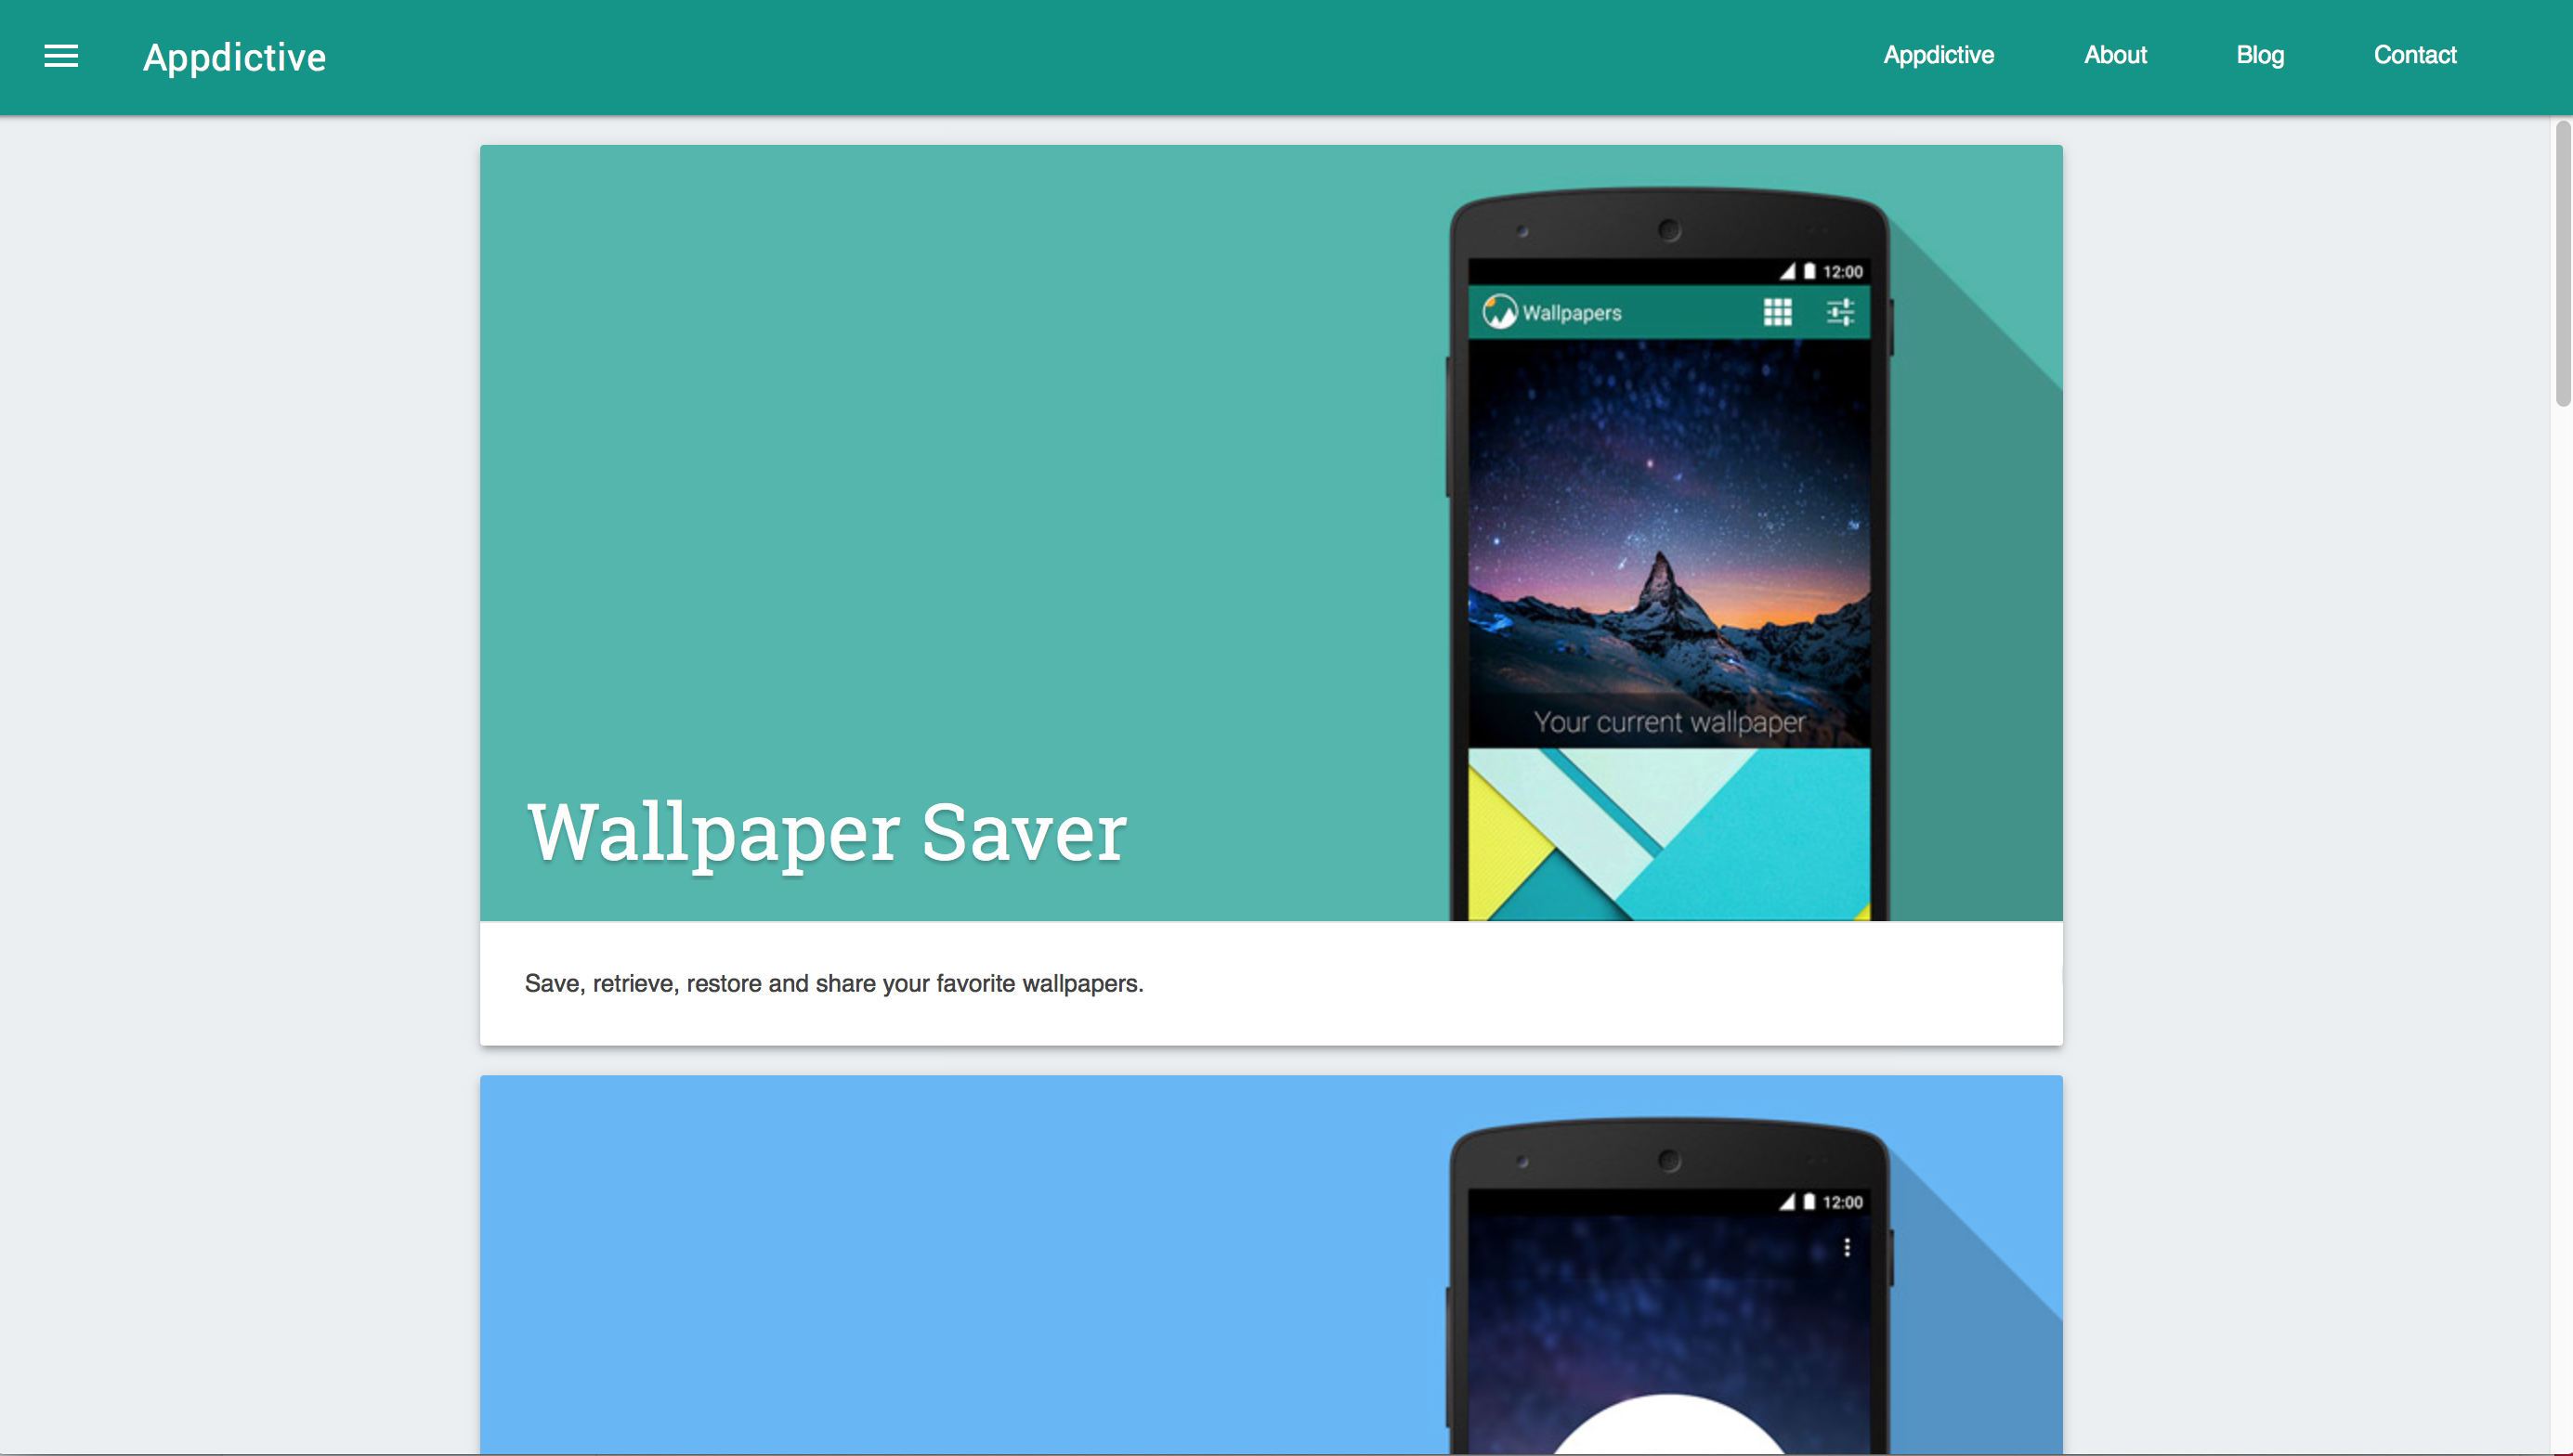 appdictive the website of android app